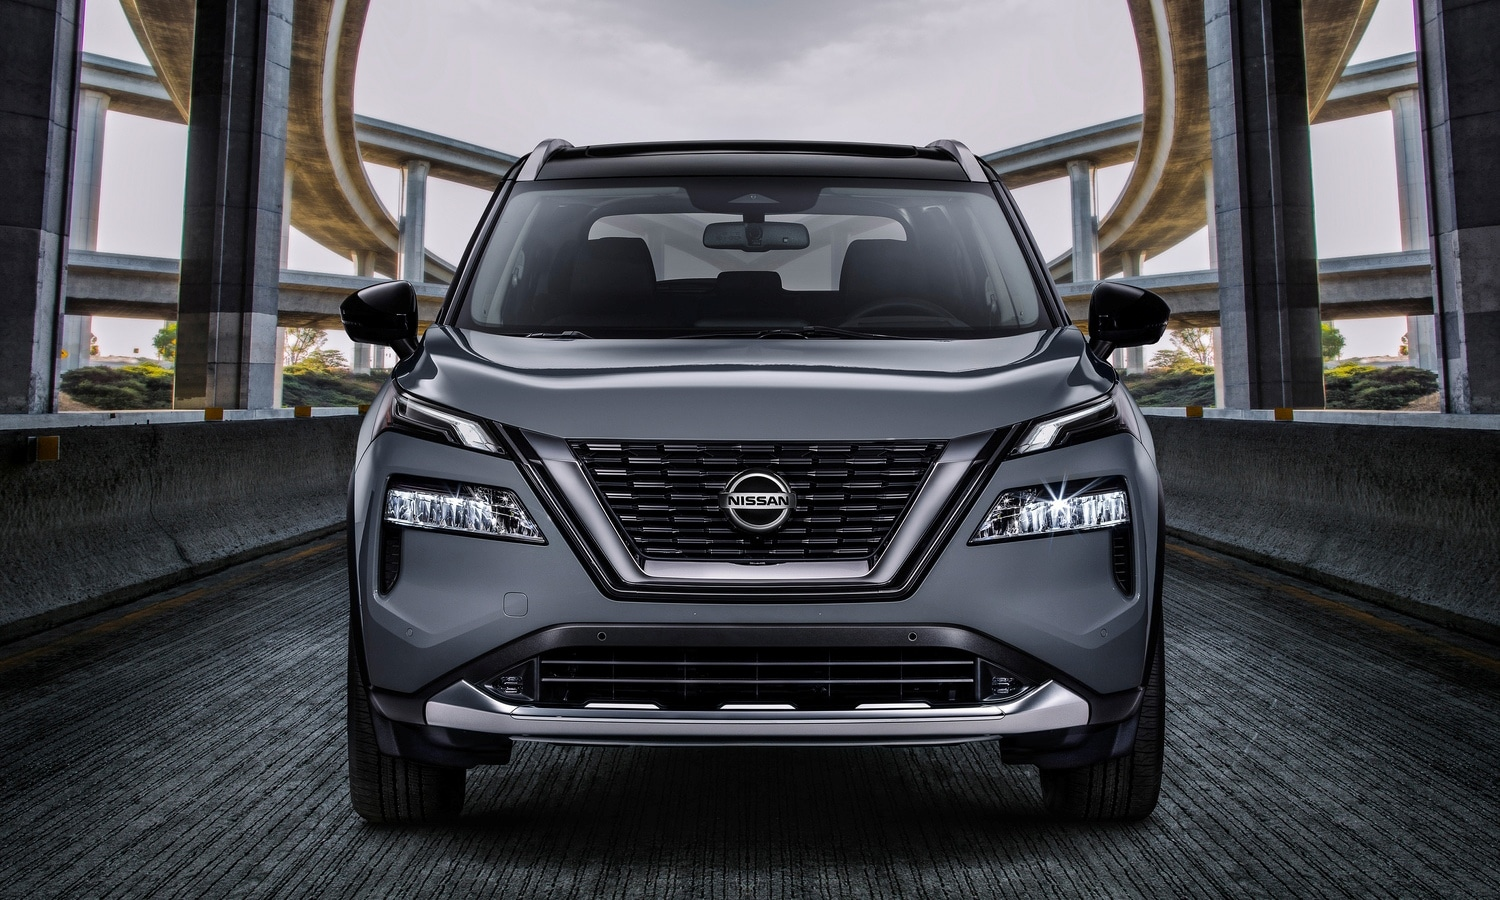 2021 Nissan Release Date and Concept